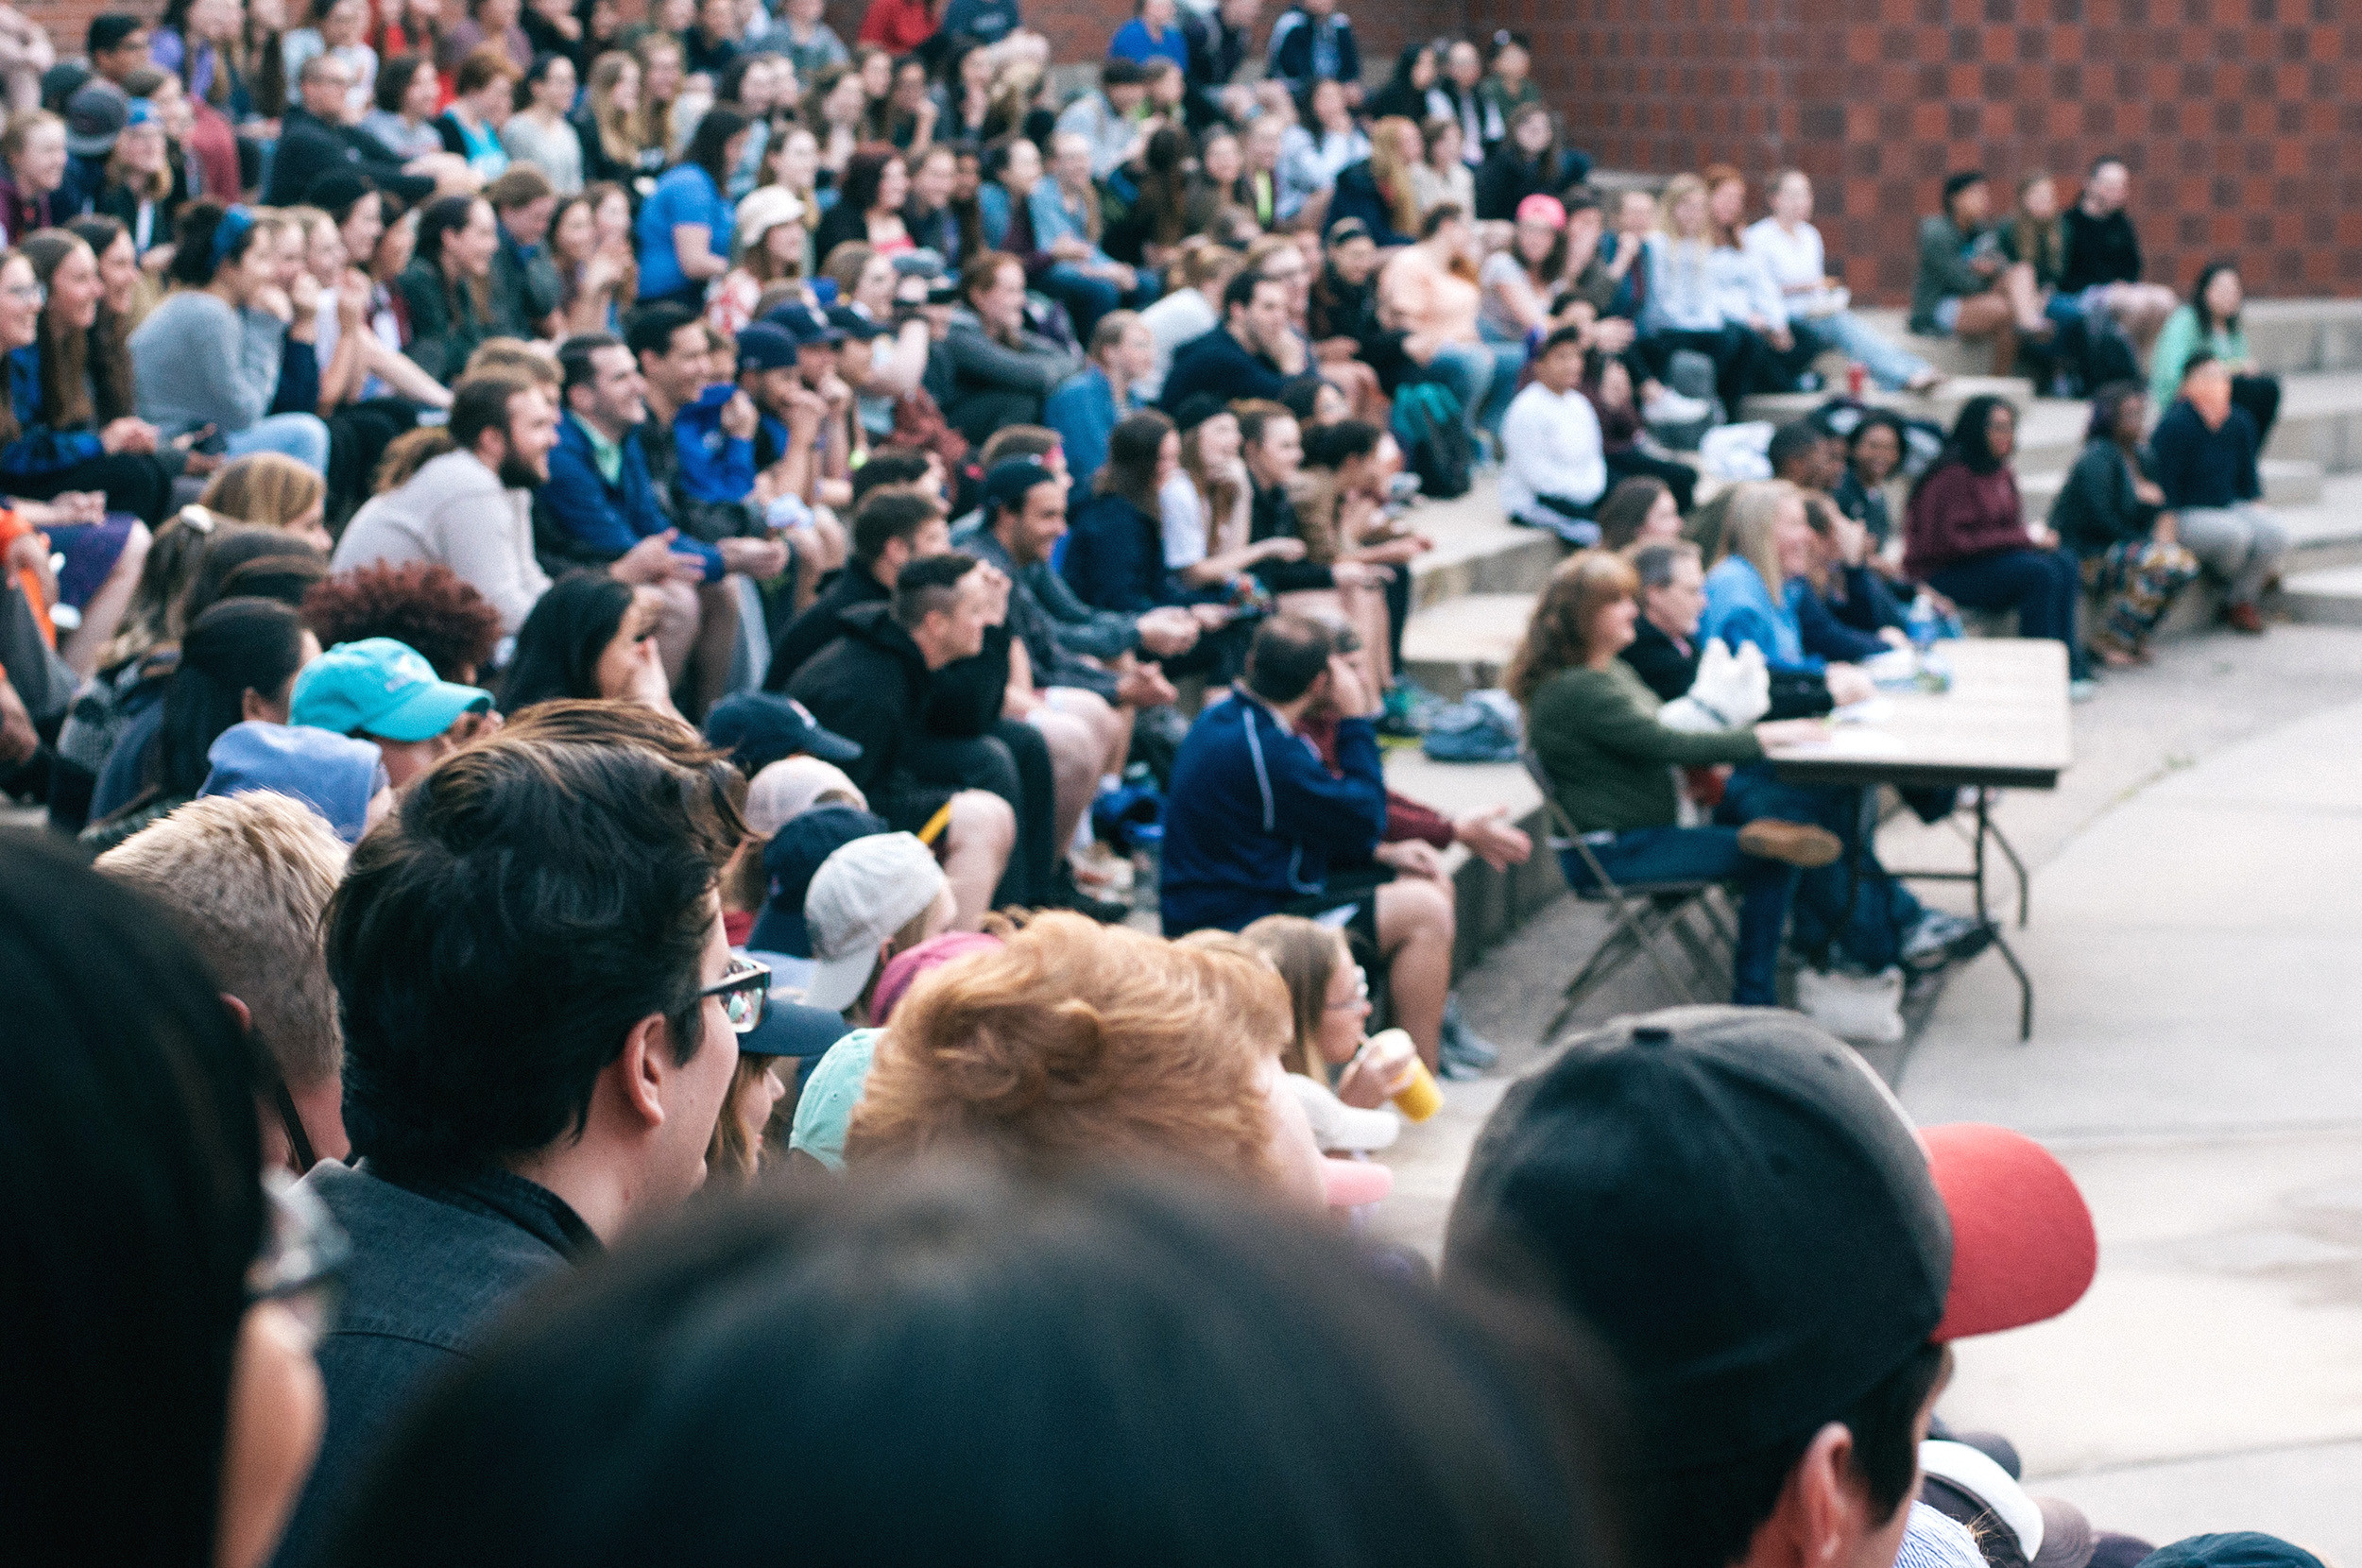 Students fill the Wriston Amphitheater to watch the Lip Sync competition.